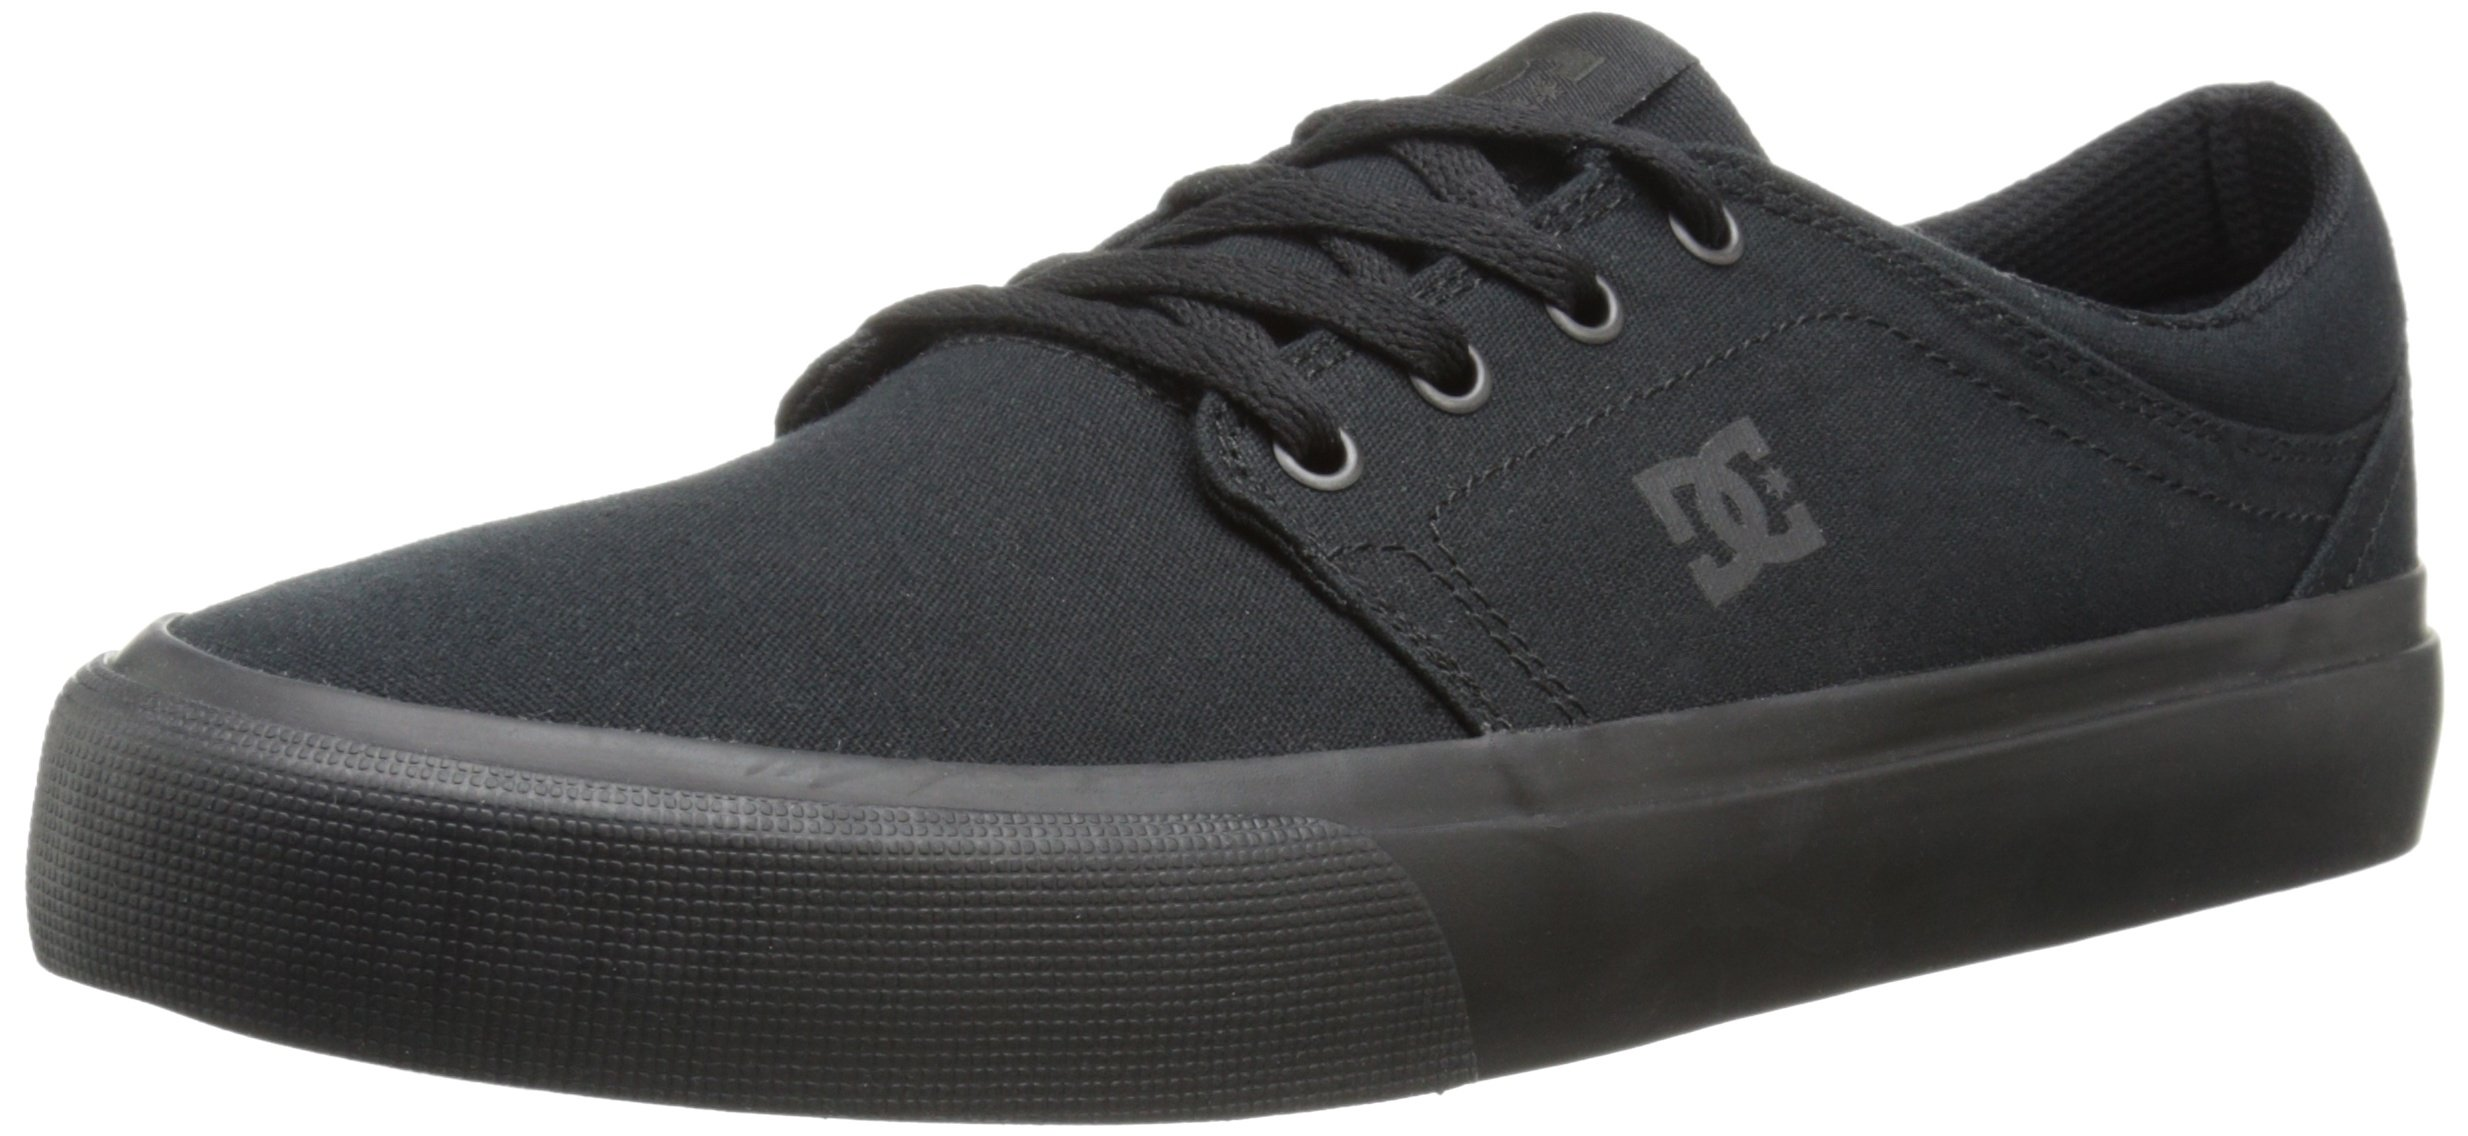 DC Men's Trase TX Skate Shoe, Black/Black/Black, 9.5 M US